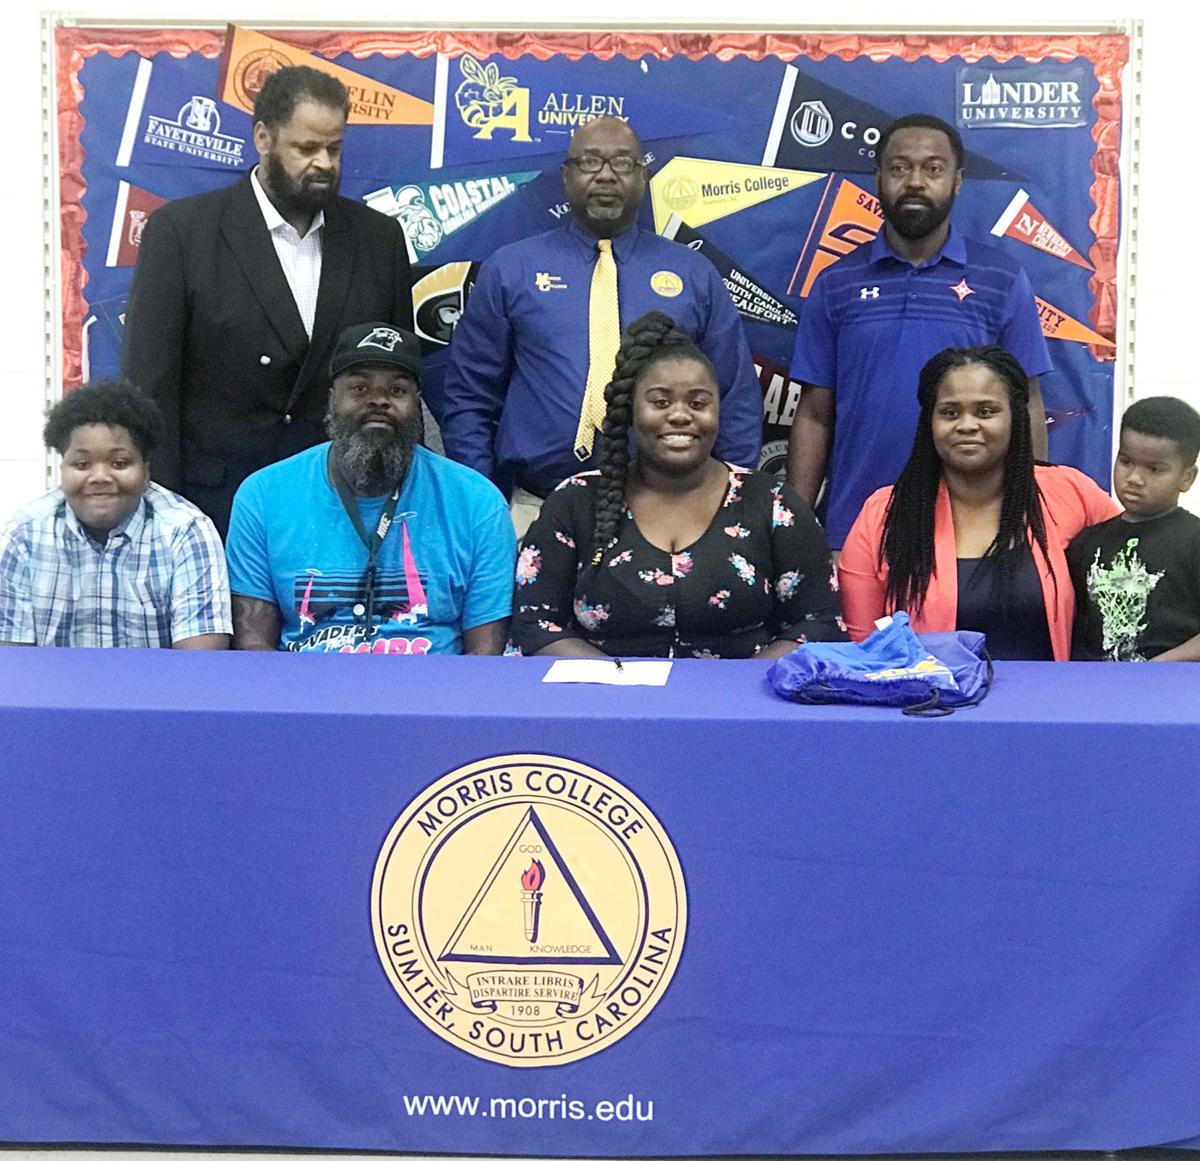 Vereen earns track scholarship to Morris College